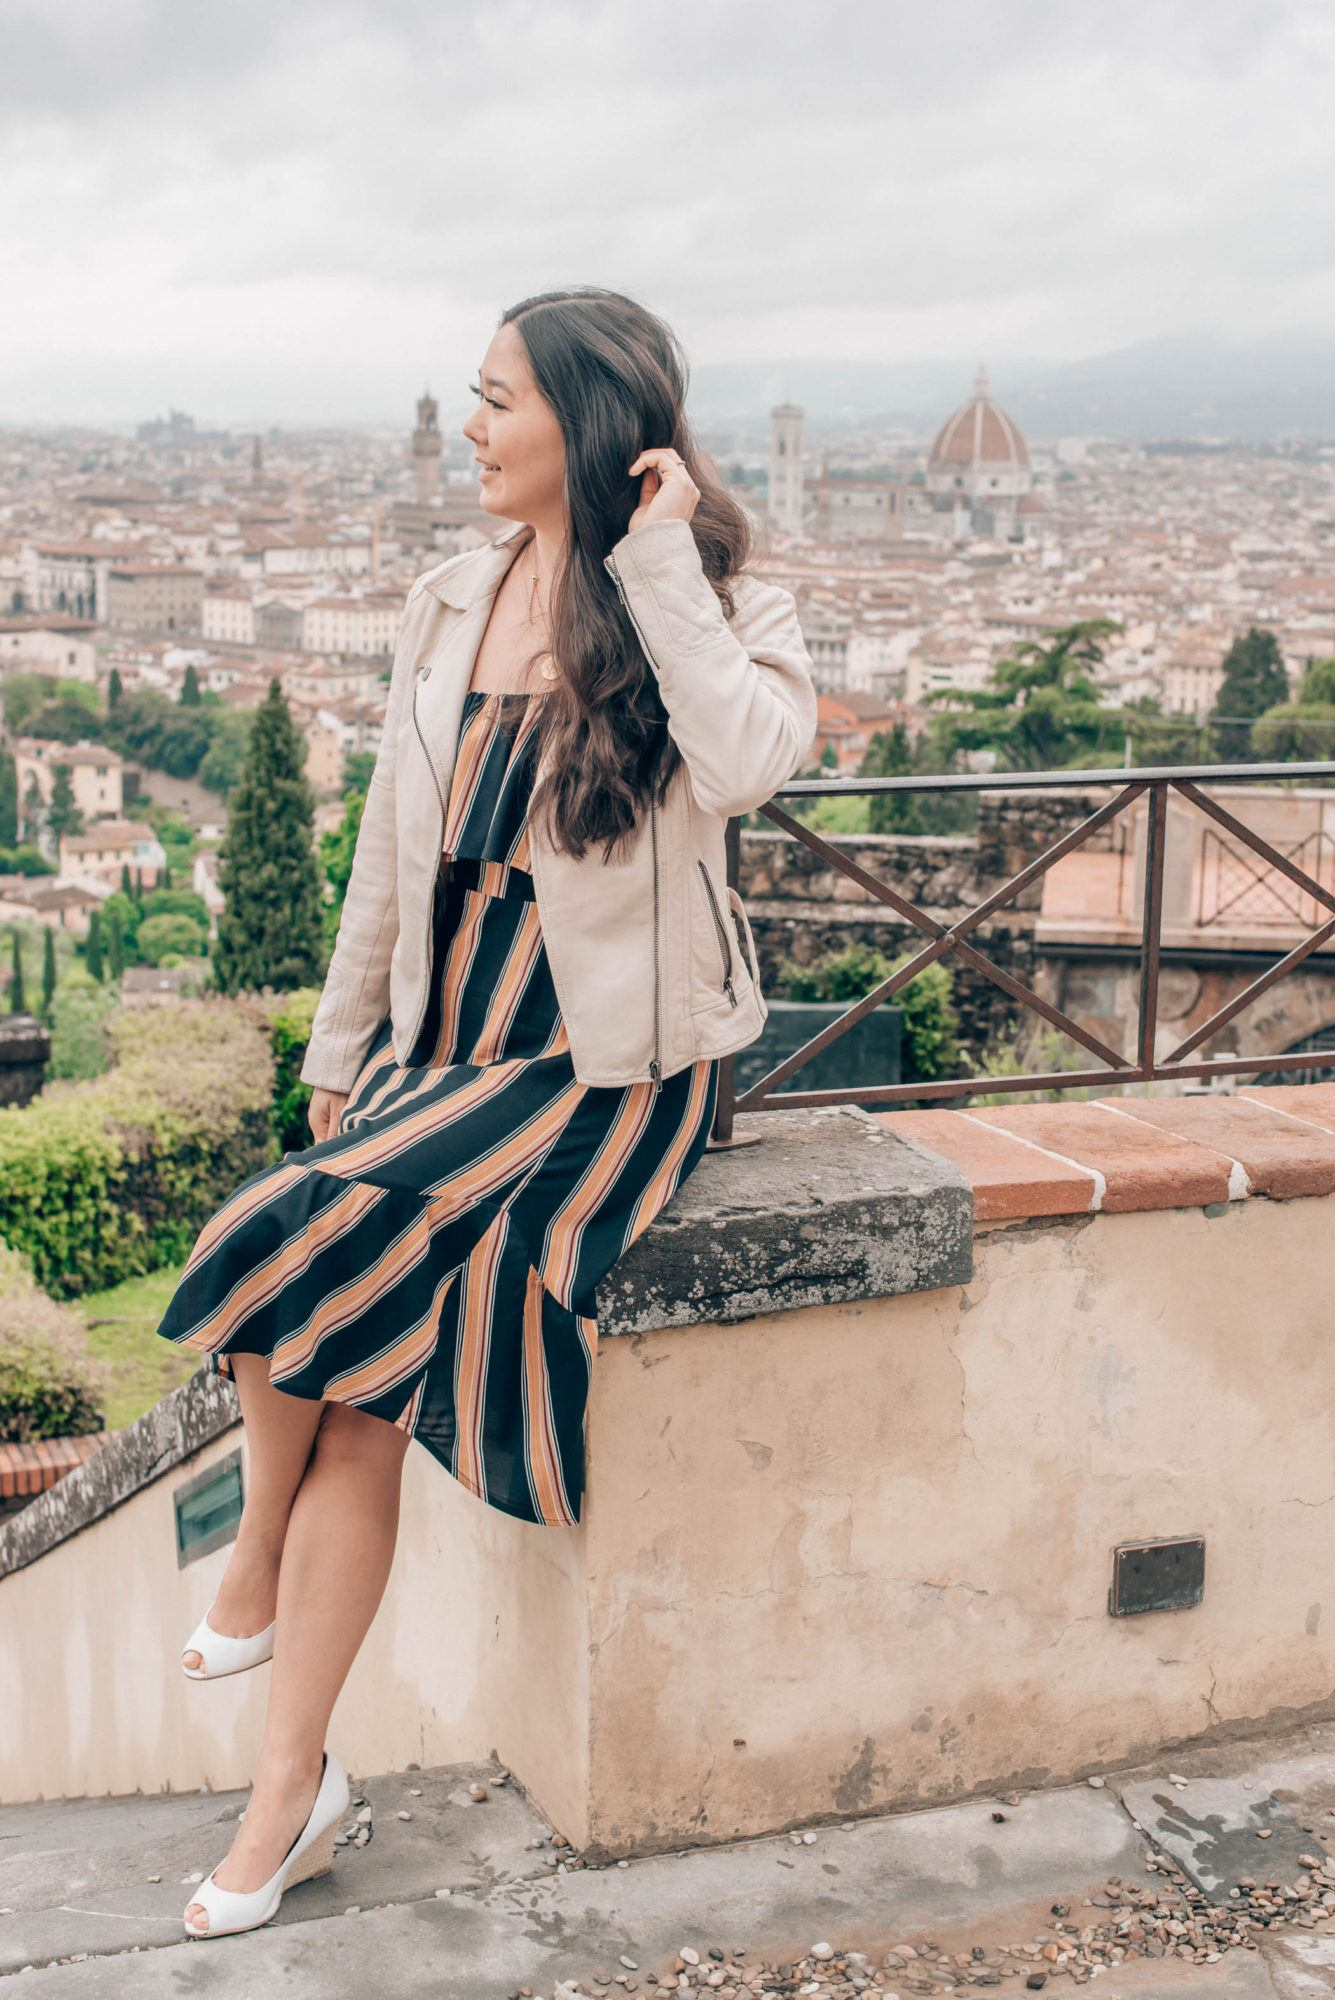 Top 10 Florence sights, by travel blogger What The Fab